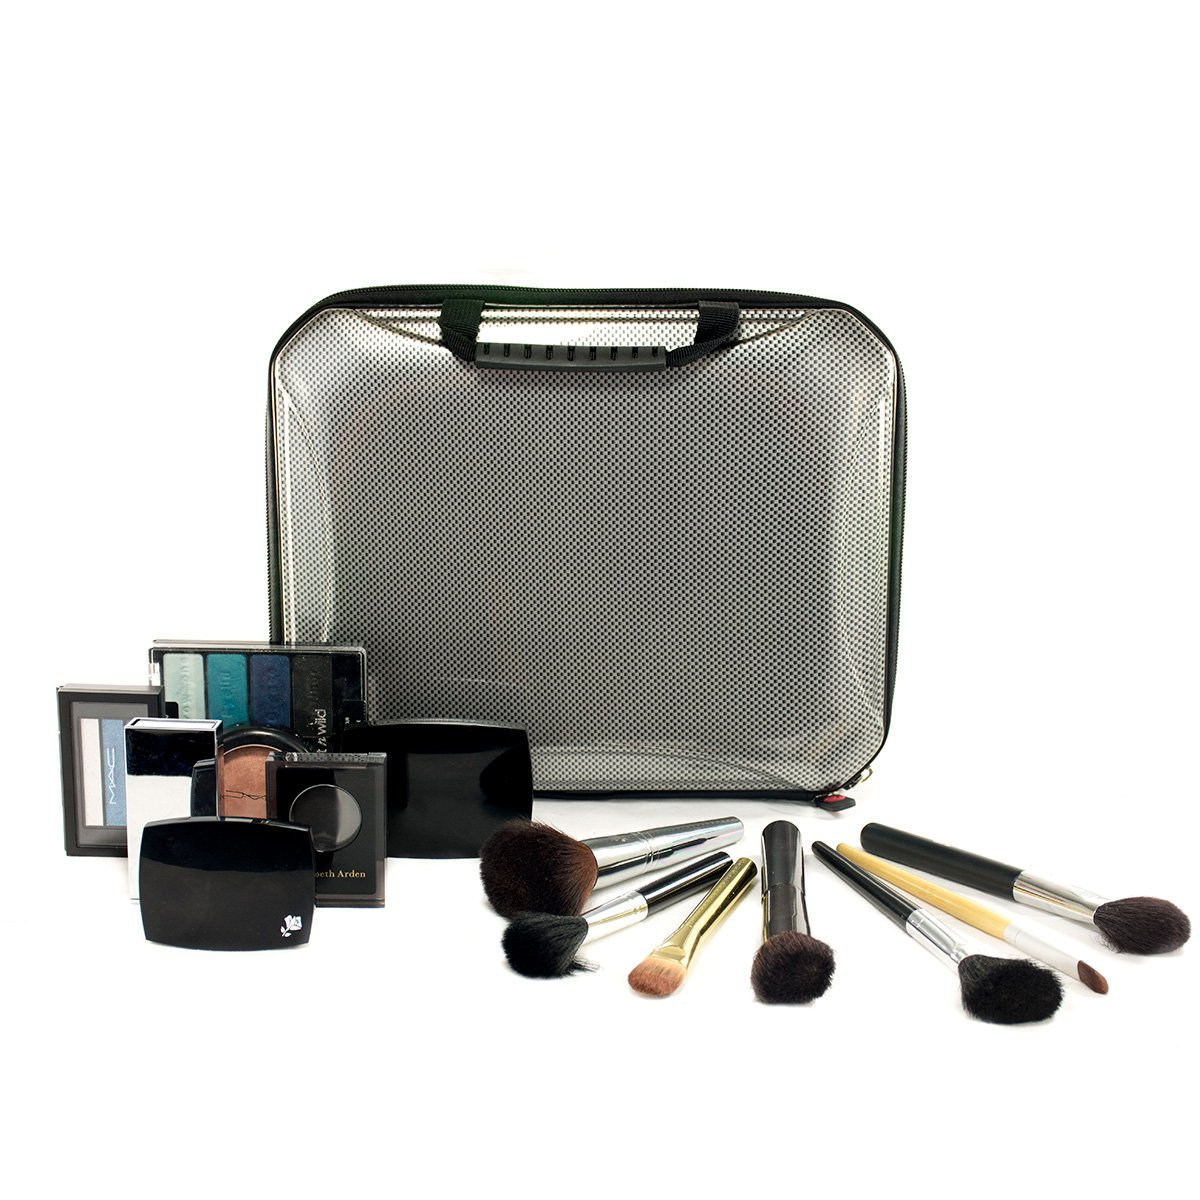 Cosmetic Hard shell protective case; Carbon Fiber make up and brush case